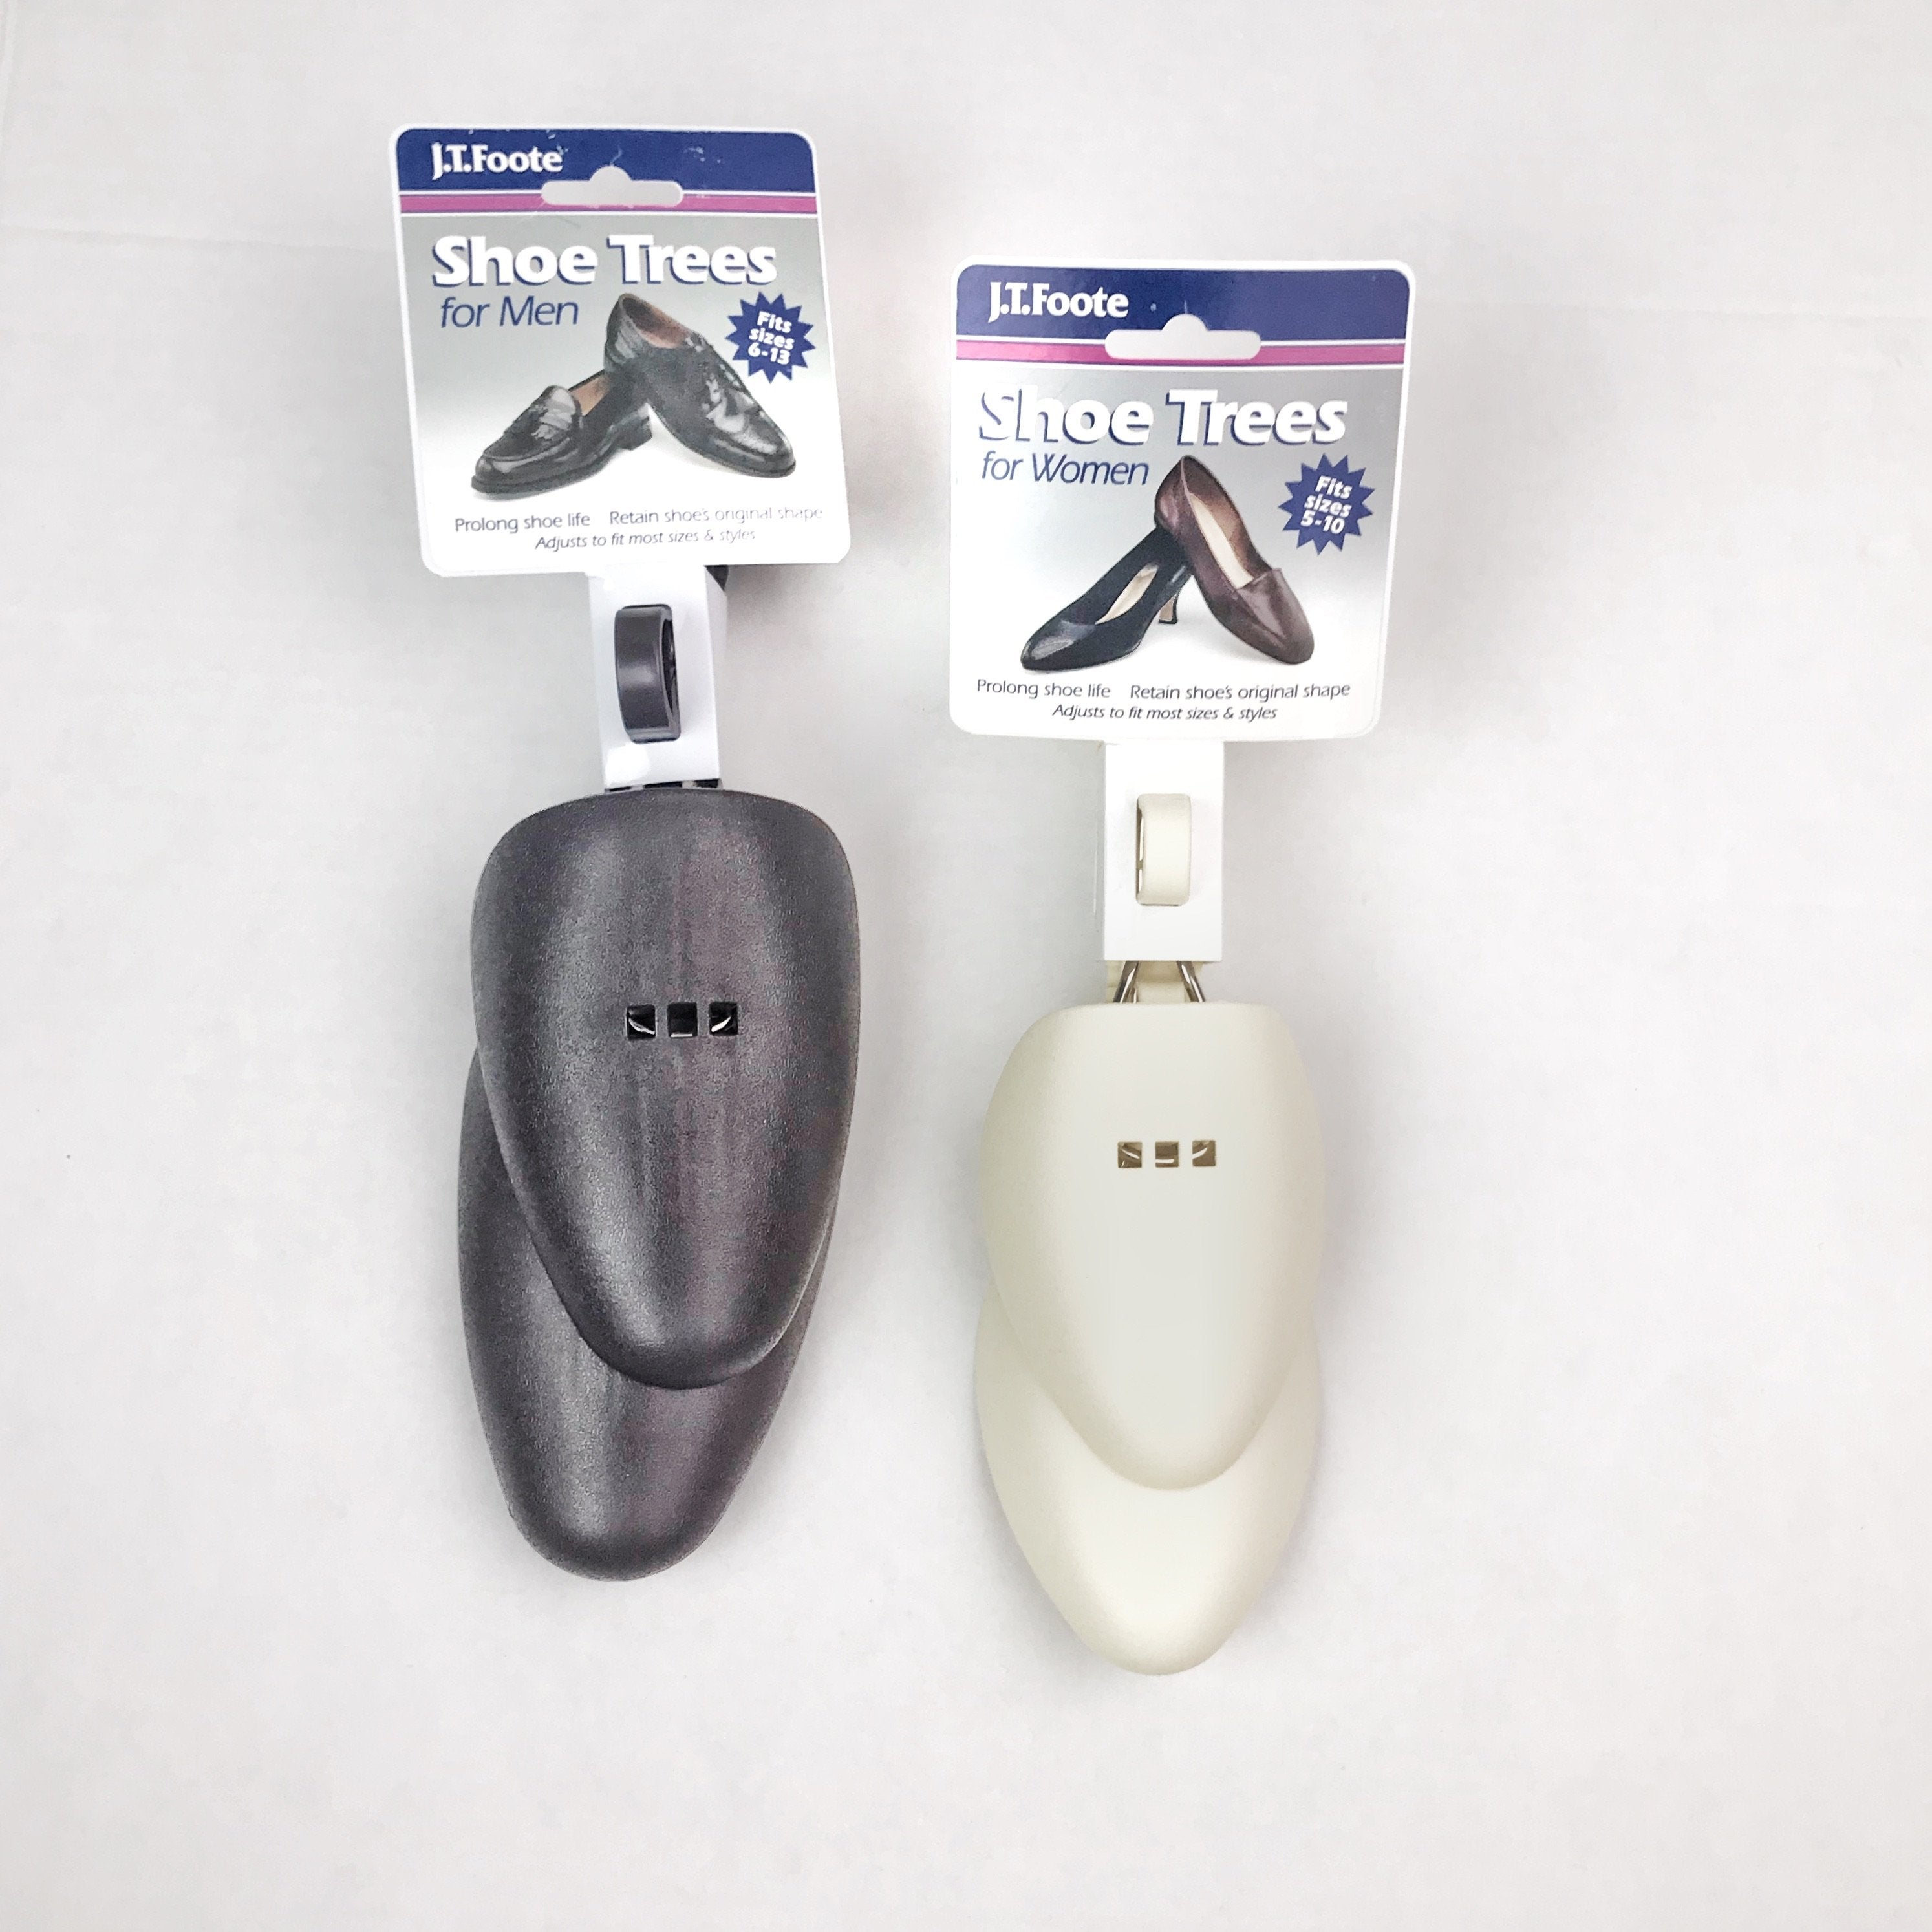 J.T. Foote Adjustable Shoe Trees - Plastic - Kicks For Gents - Shoe Tree - Shoe Accessories, Shoe trees